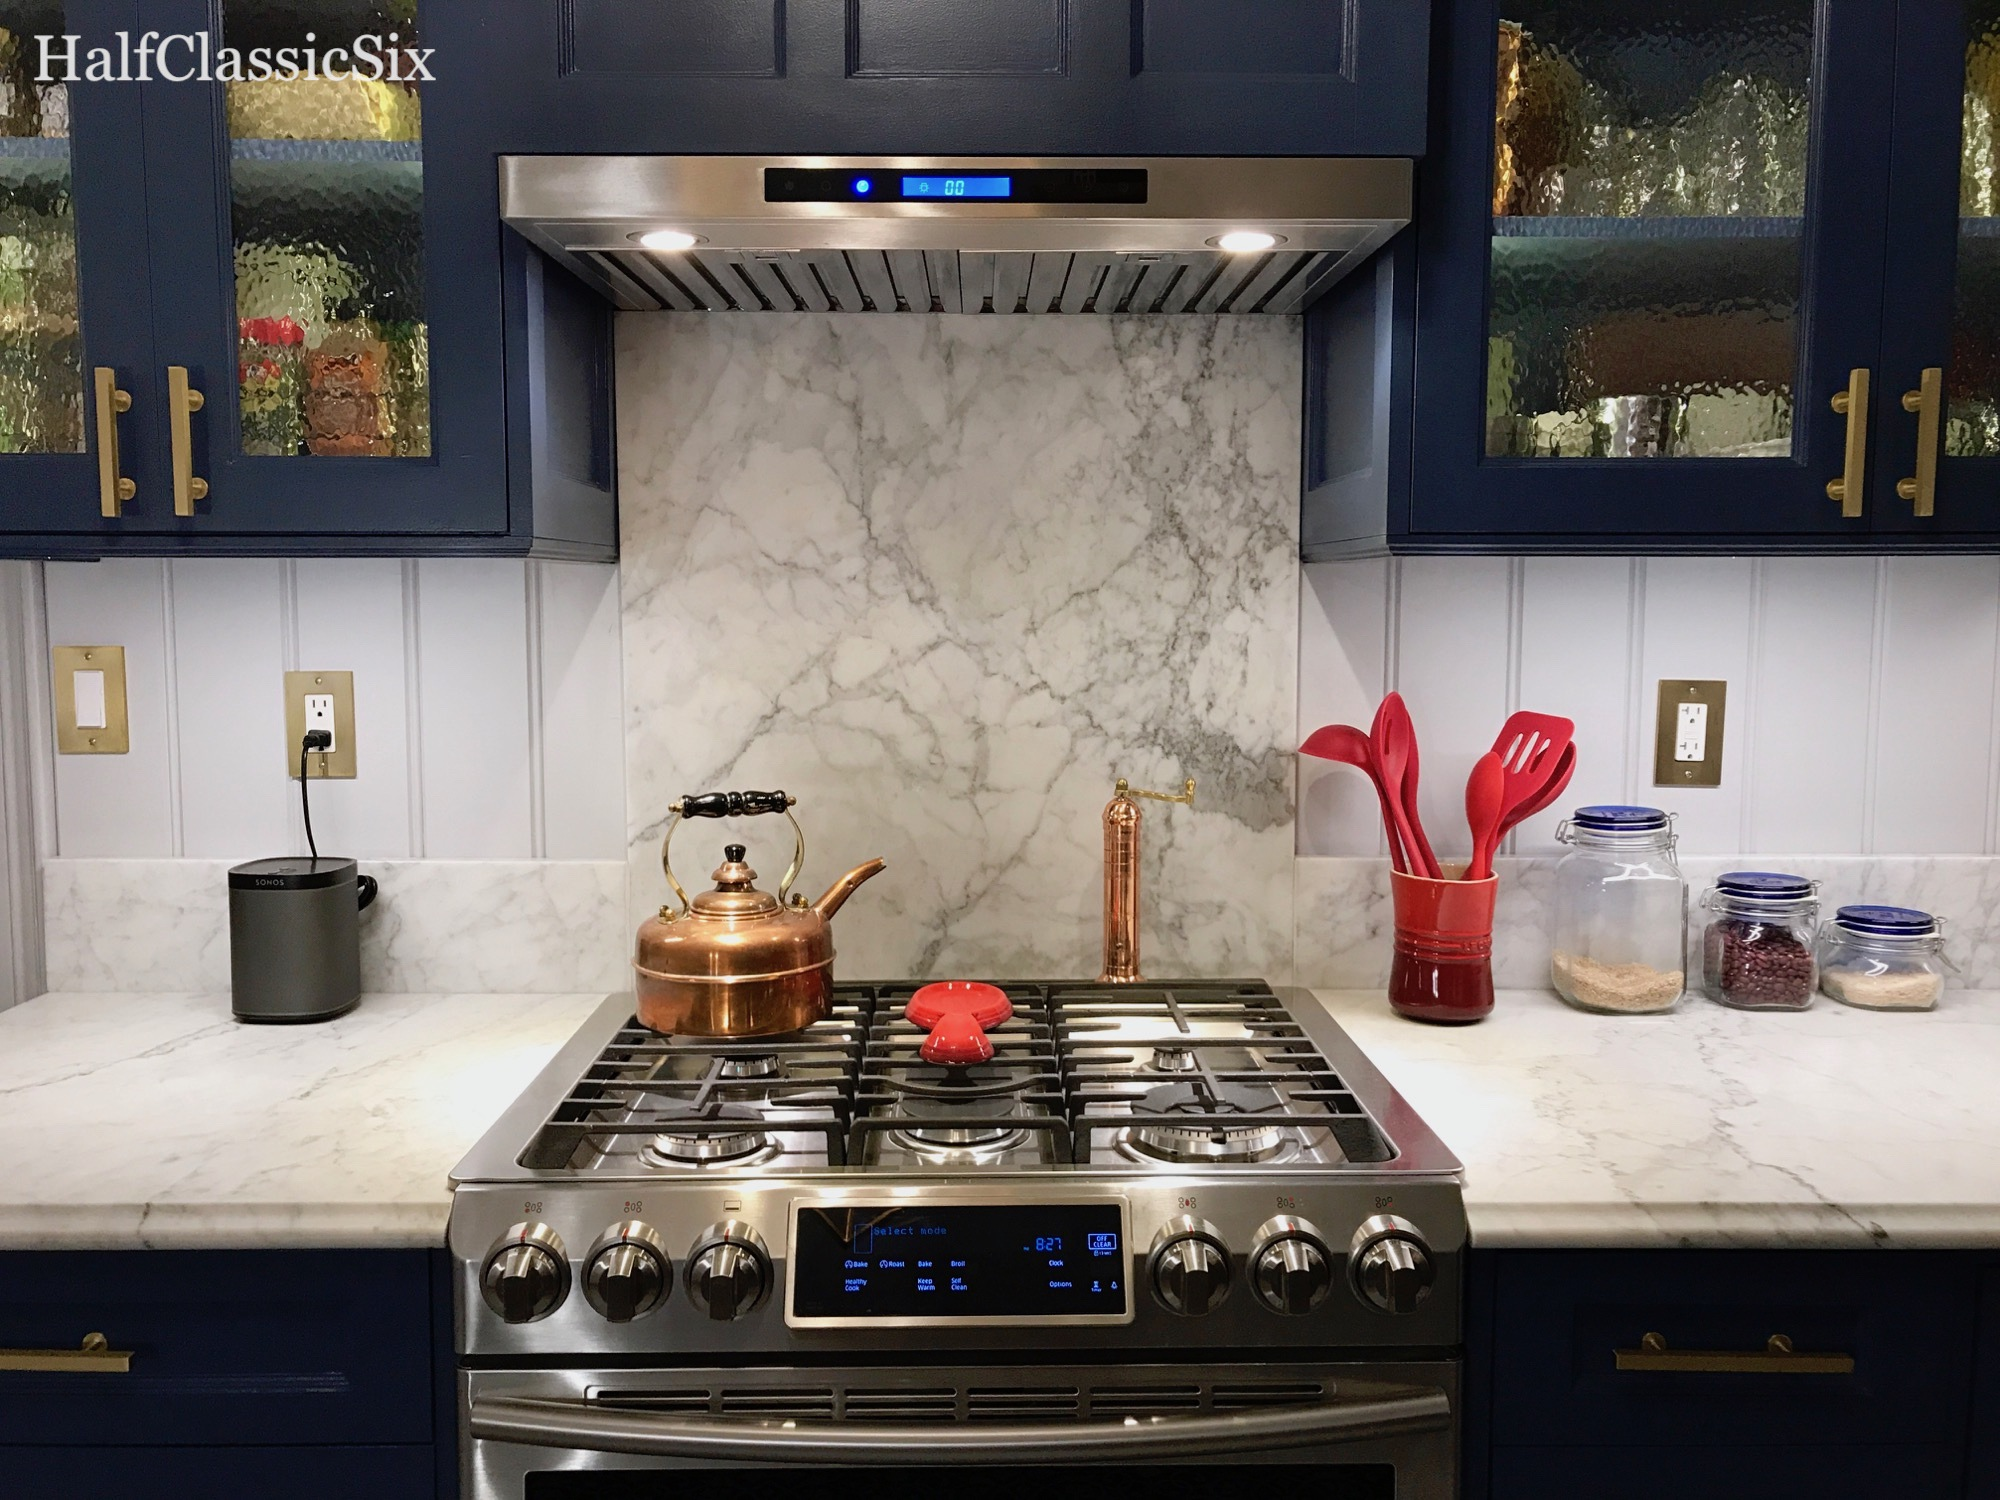 The Kitchen is Finished... Finally! - Half Classic Six